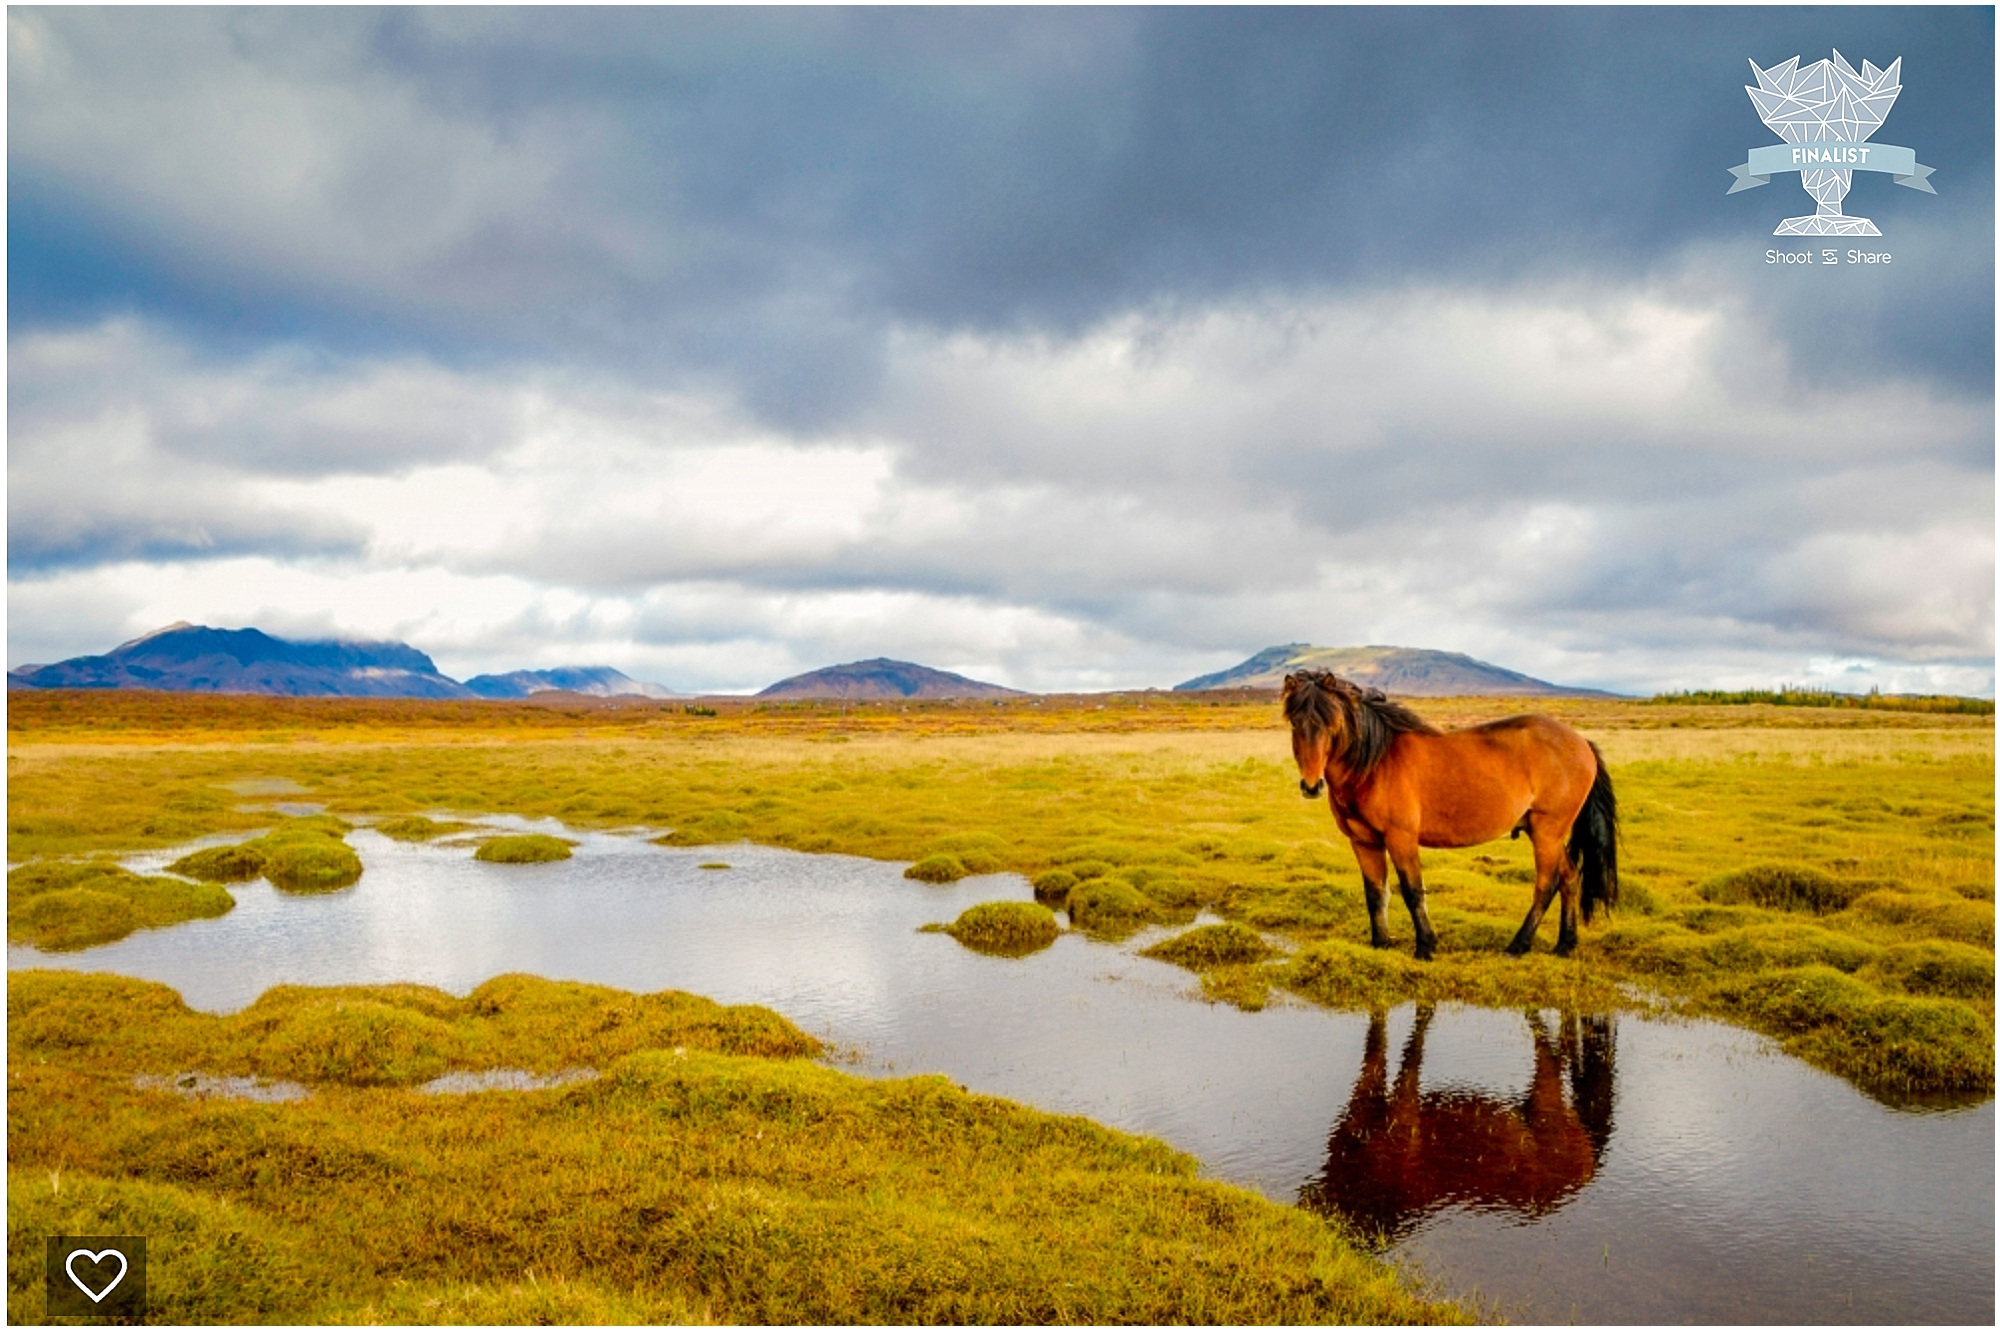 shoot and share, colorado travel photographer, lone horse, horse in landscape